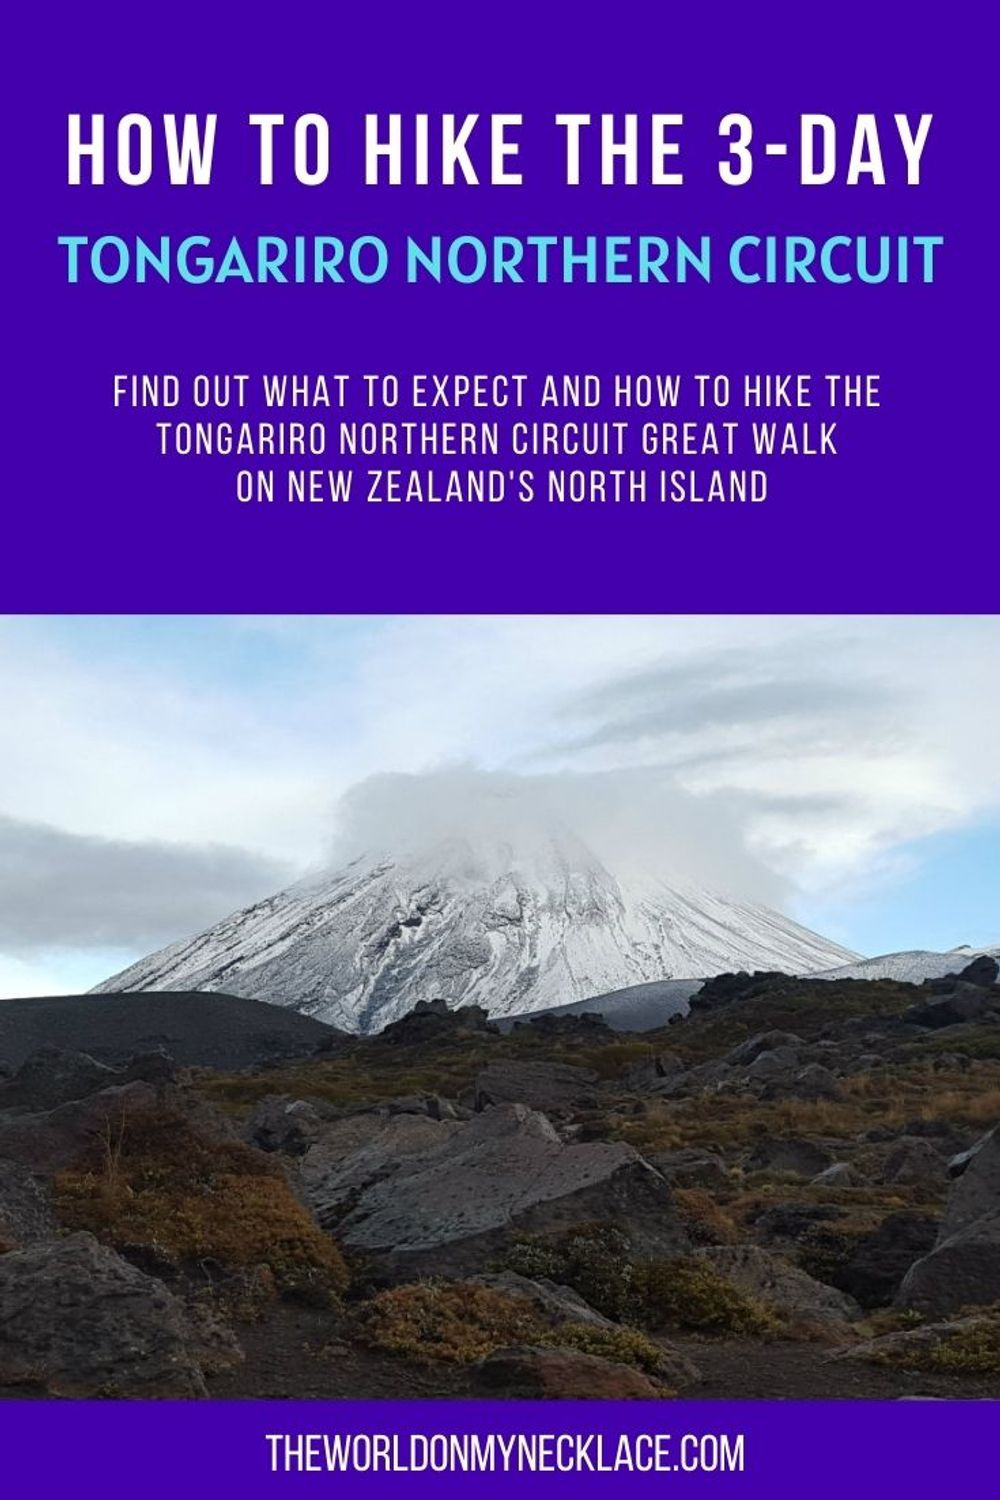 How to Hike the 3-Day Tongariro Northern Circuit in New Zealand